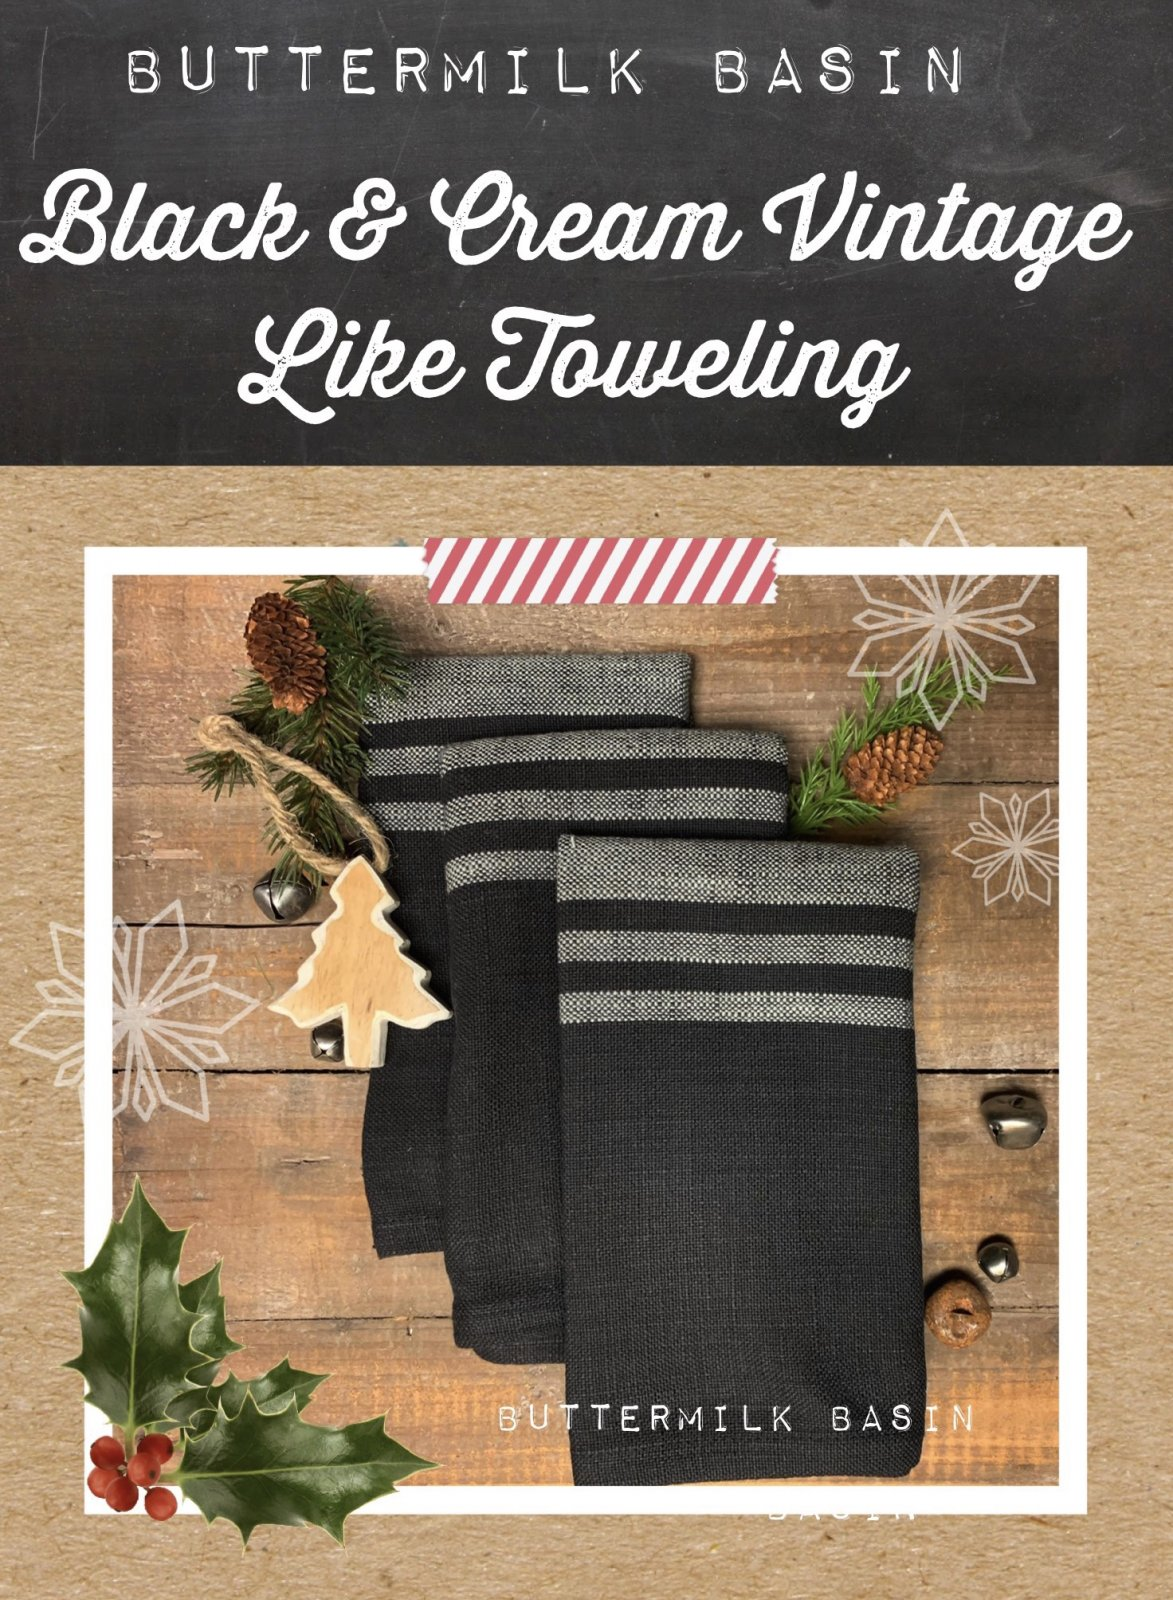 Black & Cream Vintage Like Toweling